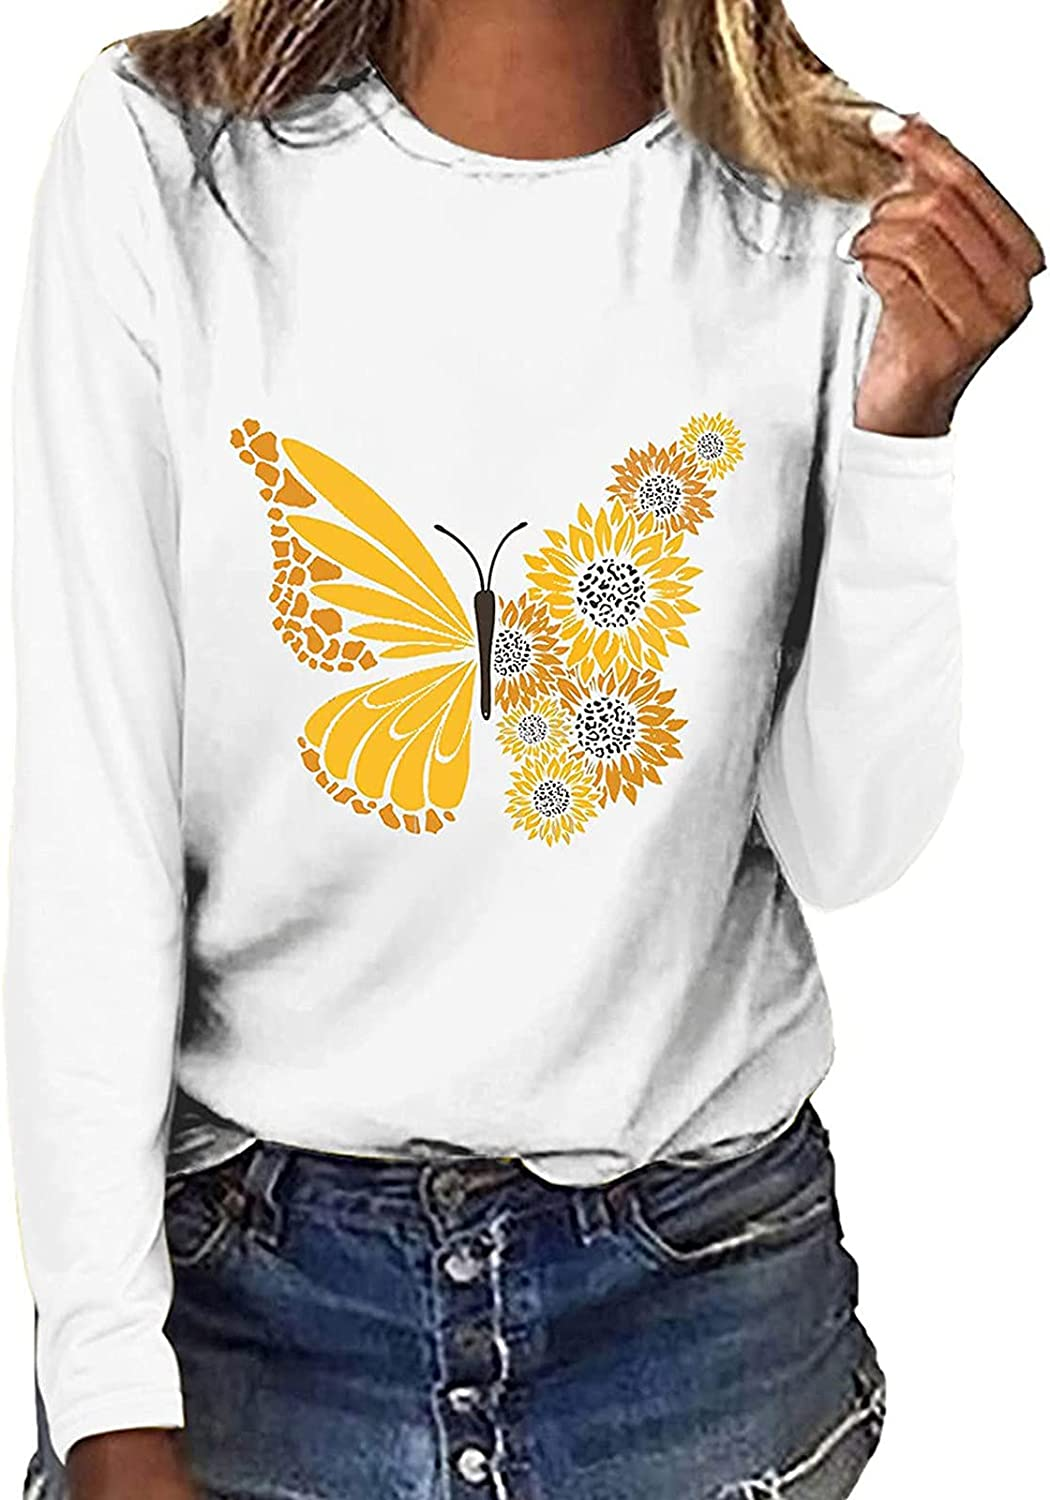 Womens Casual Sweatshirt Butterfly Sunflower Printing Blouse Tees O-Neck Loose Long Sleeve T-Shirt Tops